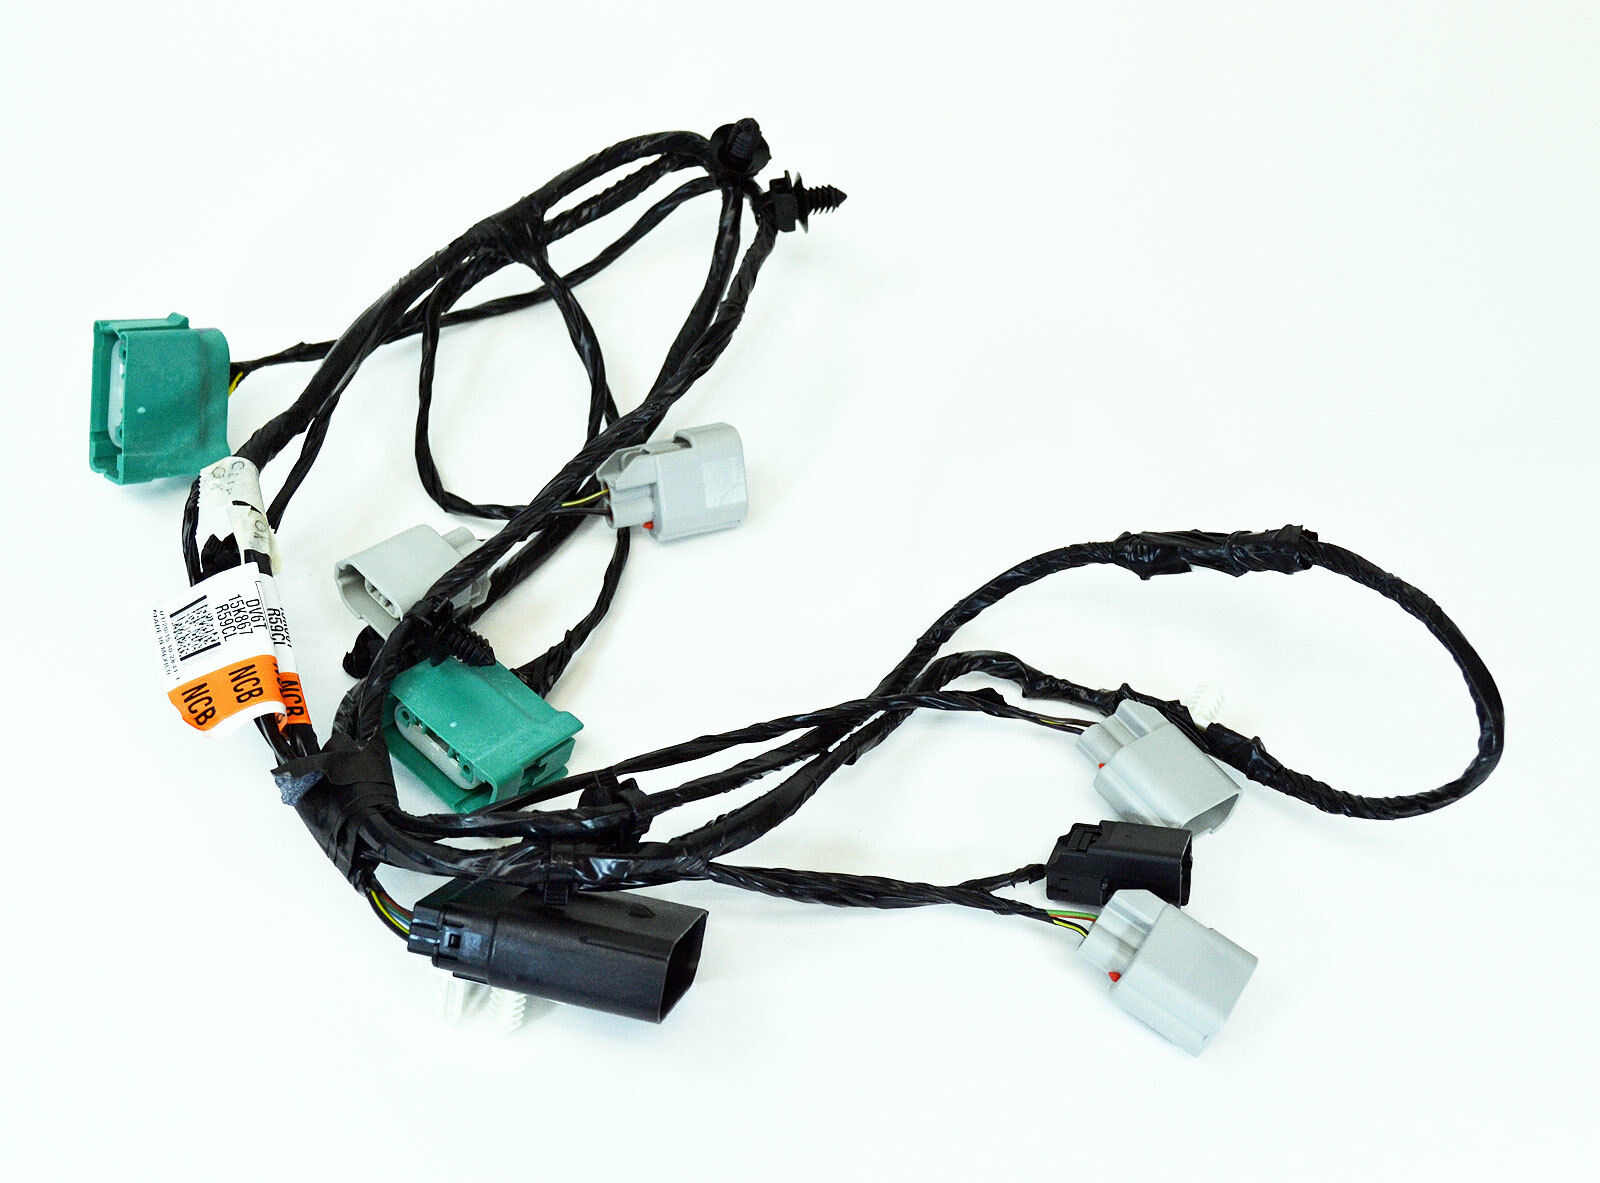 Ford Escape Wiring Harness Oem 13 16 Front Bumper Wire Dv6z15k867c 3163 1 Of 4only 4 Available